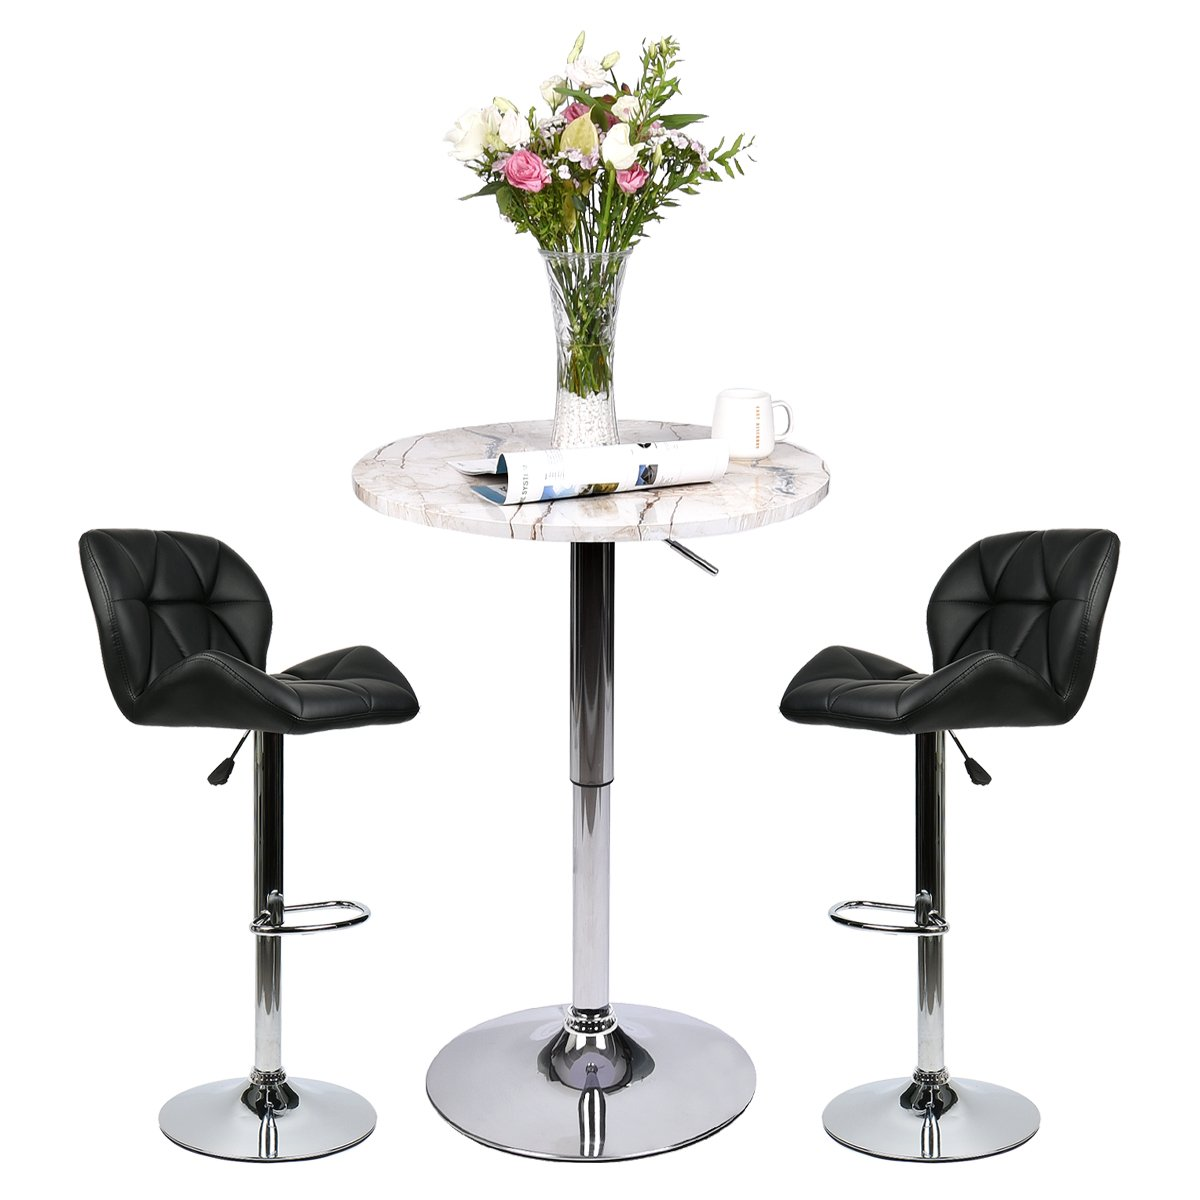 Pub Table Set 3 Piece - 24 inch Round Table with 2 Leatherette Chairs - Height Adjustable (Black Barstools + Marble Stripe Pub Table)